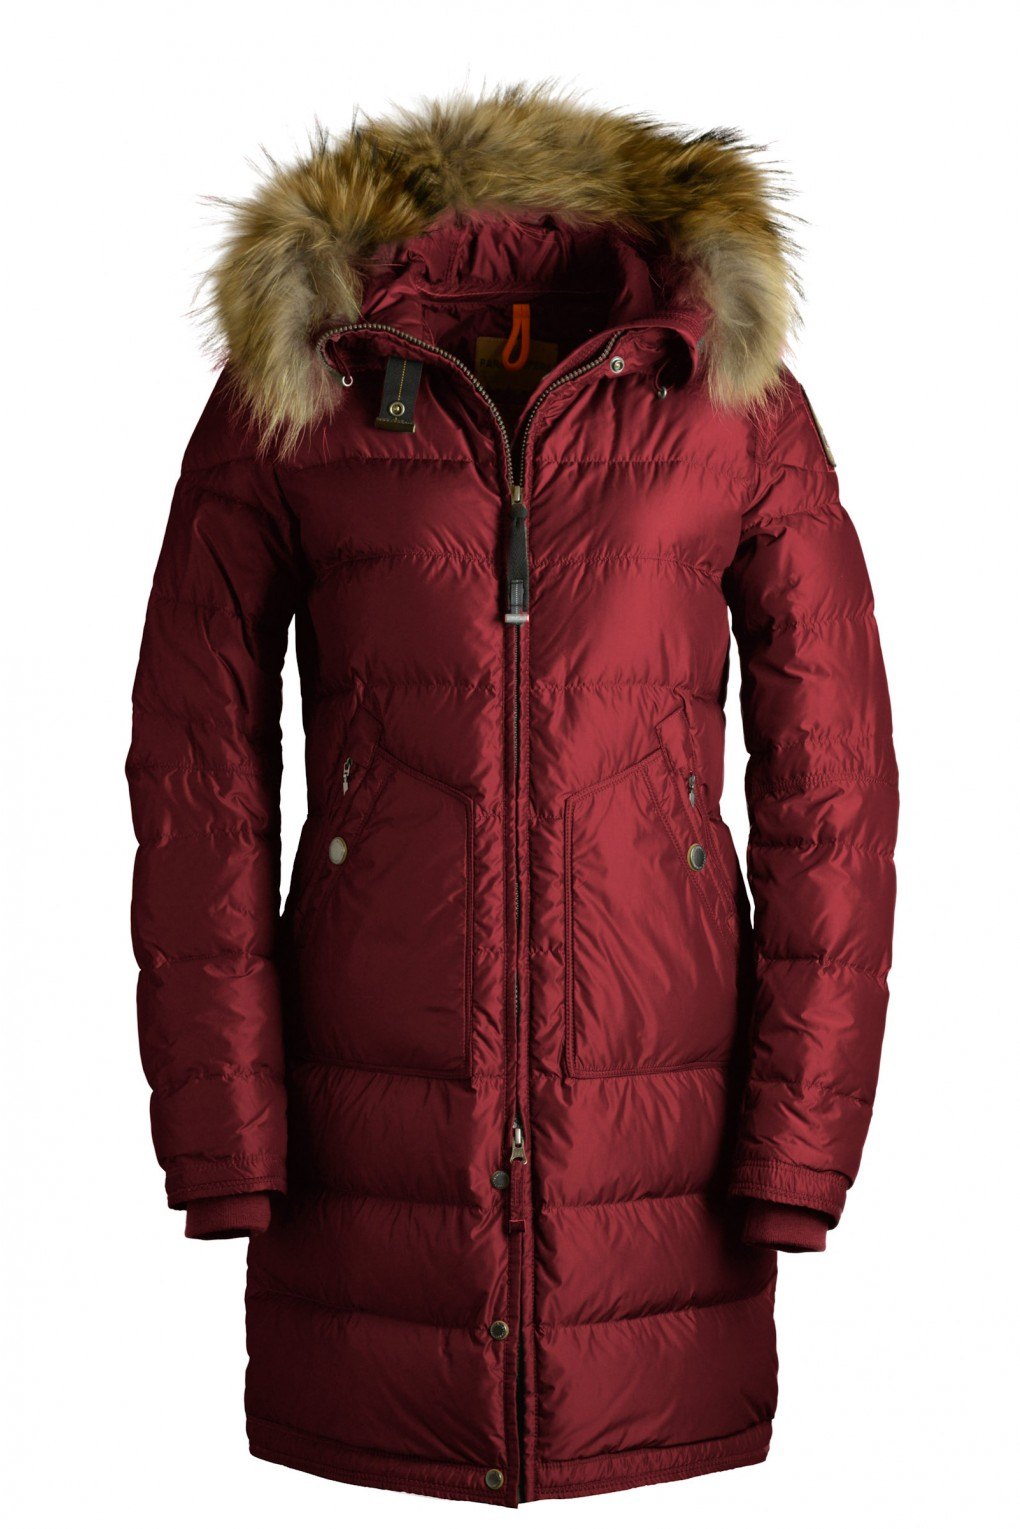 parajumpers LIGHT LONG BEAR woman outerwear Red